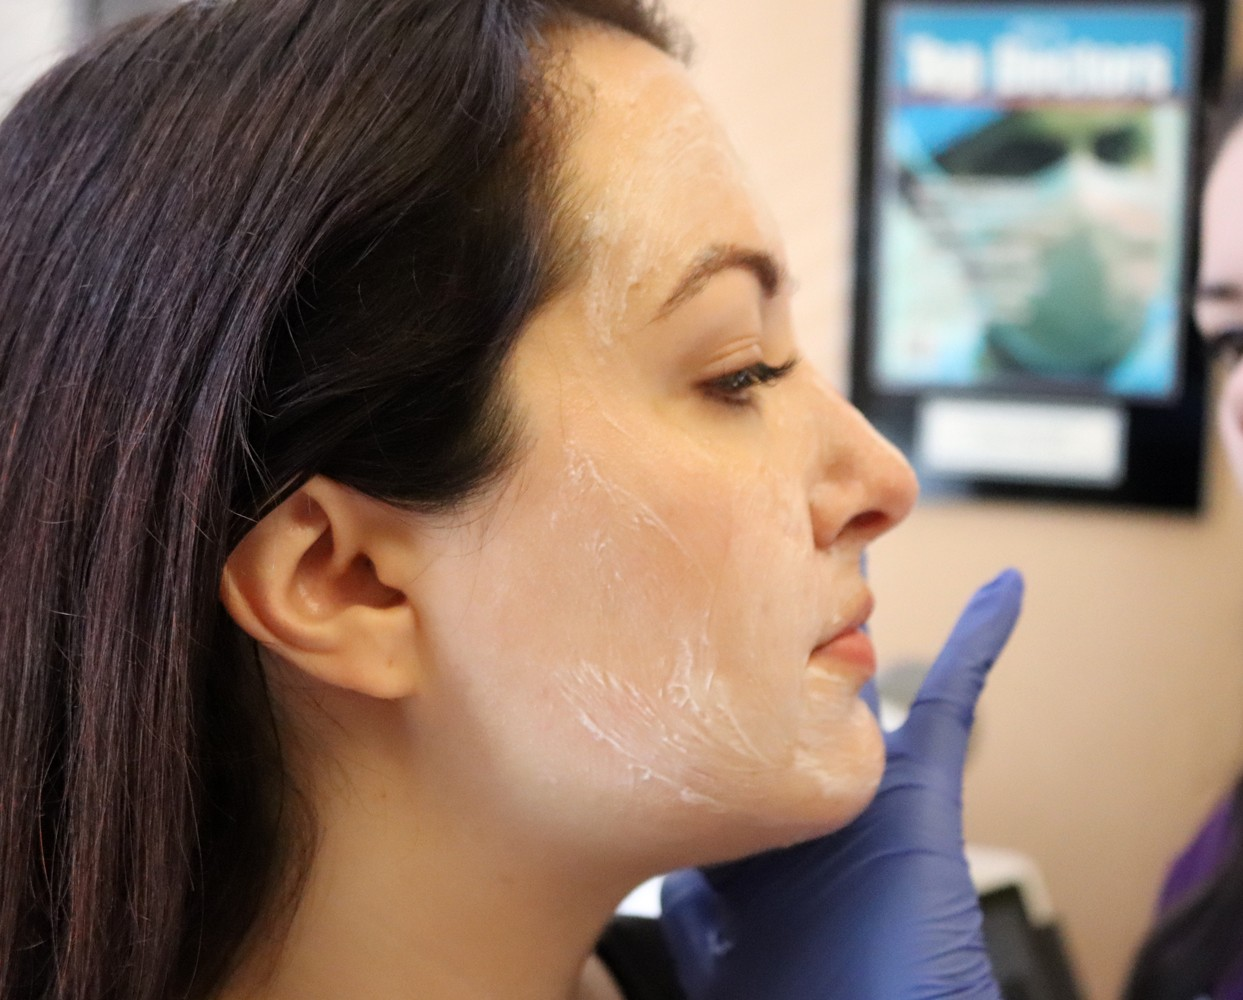 PiQo4 Laser - the Only Melasma Treatment that has Ever Worked for Me! featured by popular Los Angeles cruely free beauty blogger My Beauty Bunny